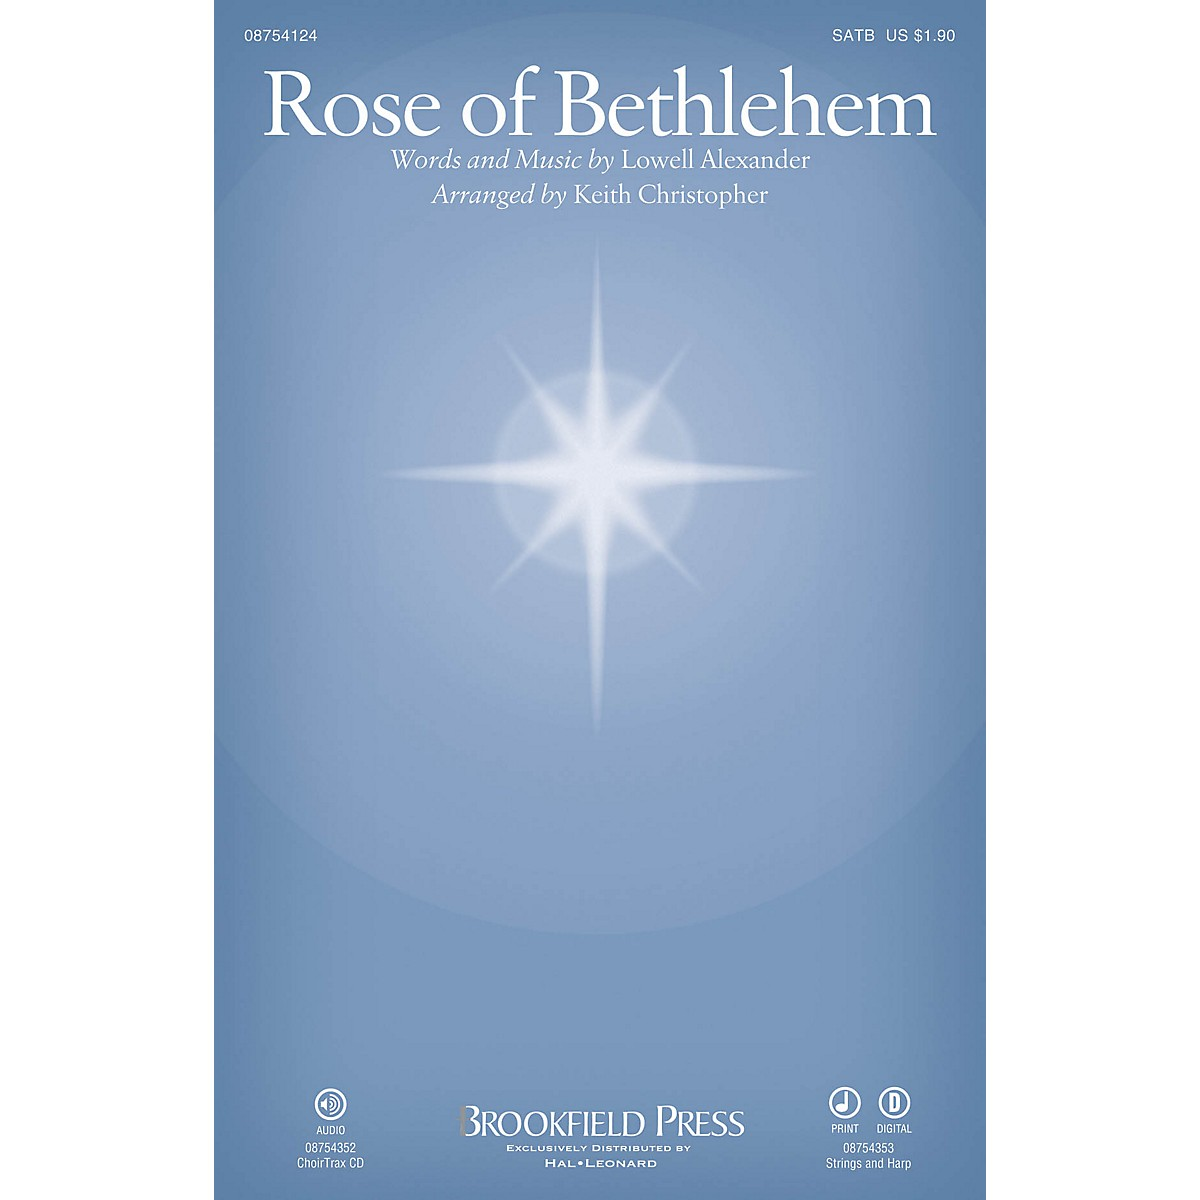 Brookfield Rose of Bethlehem CHOIRTRAX CD by Selah Arranged by Keith Christopher